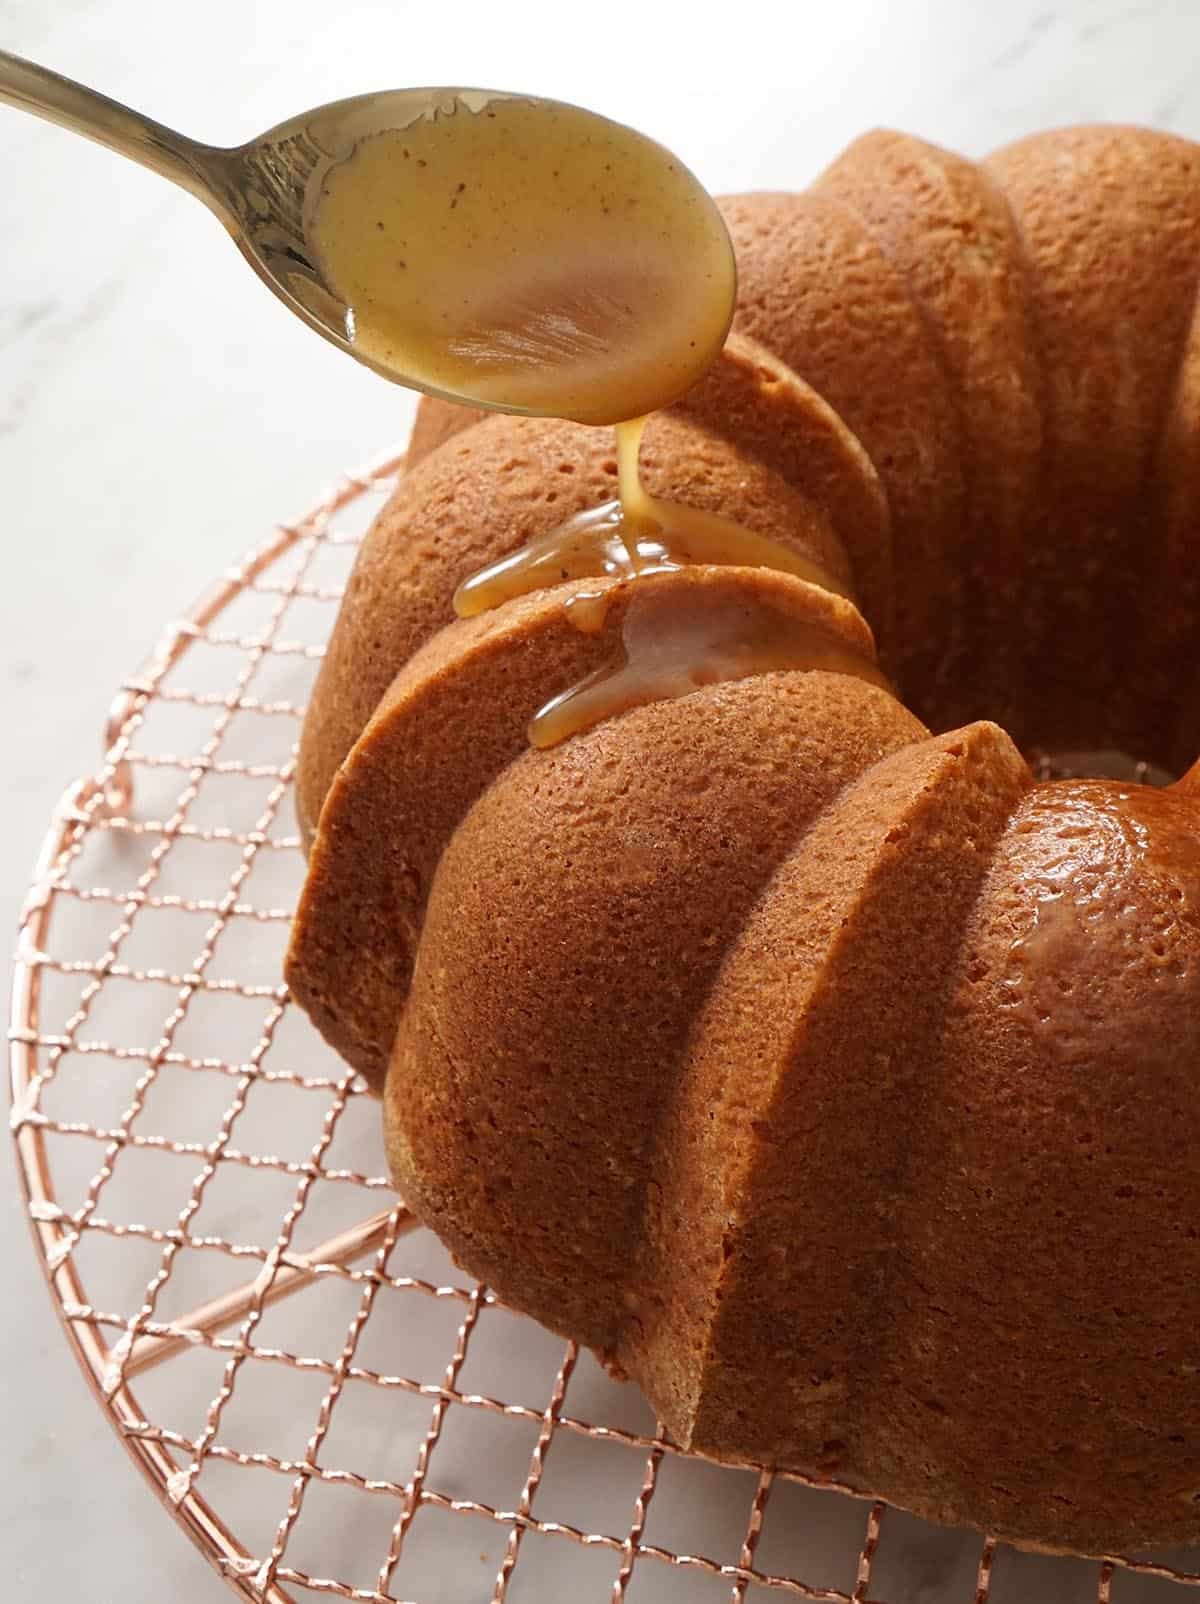 Rum sauce getting spooned onto a bundt cake.